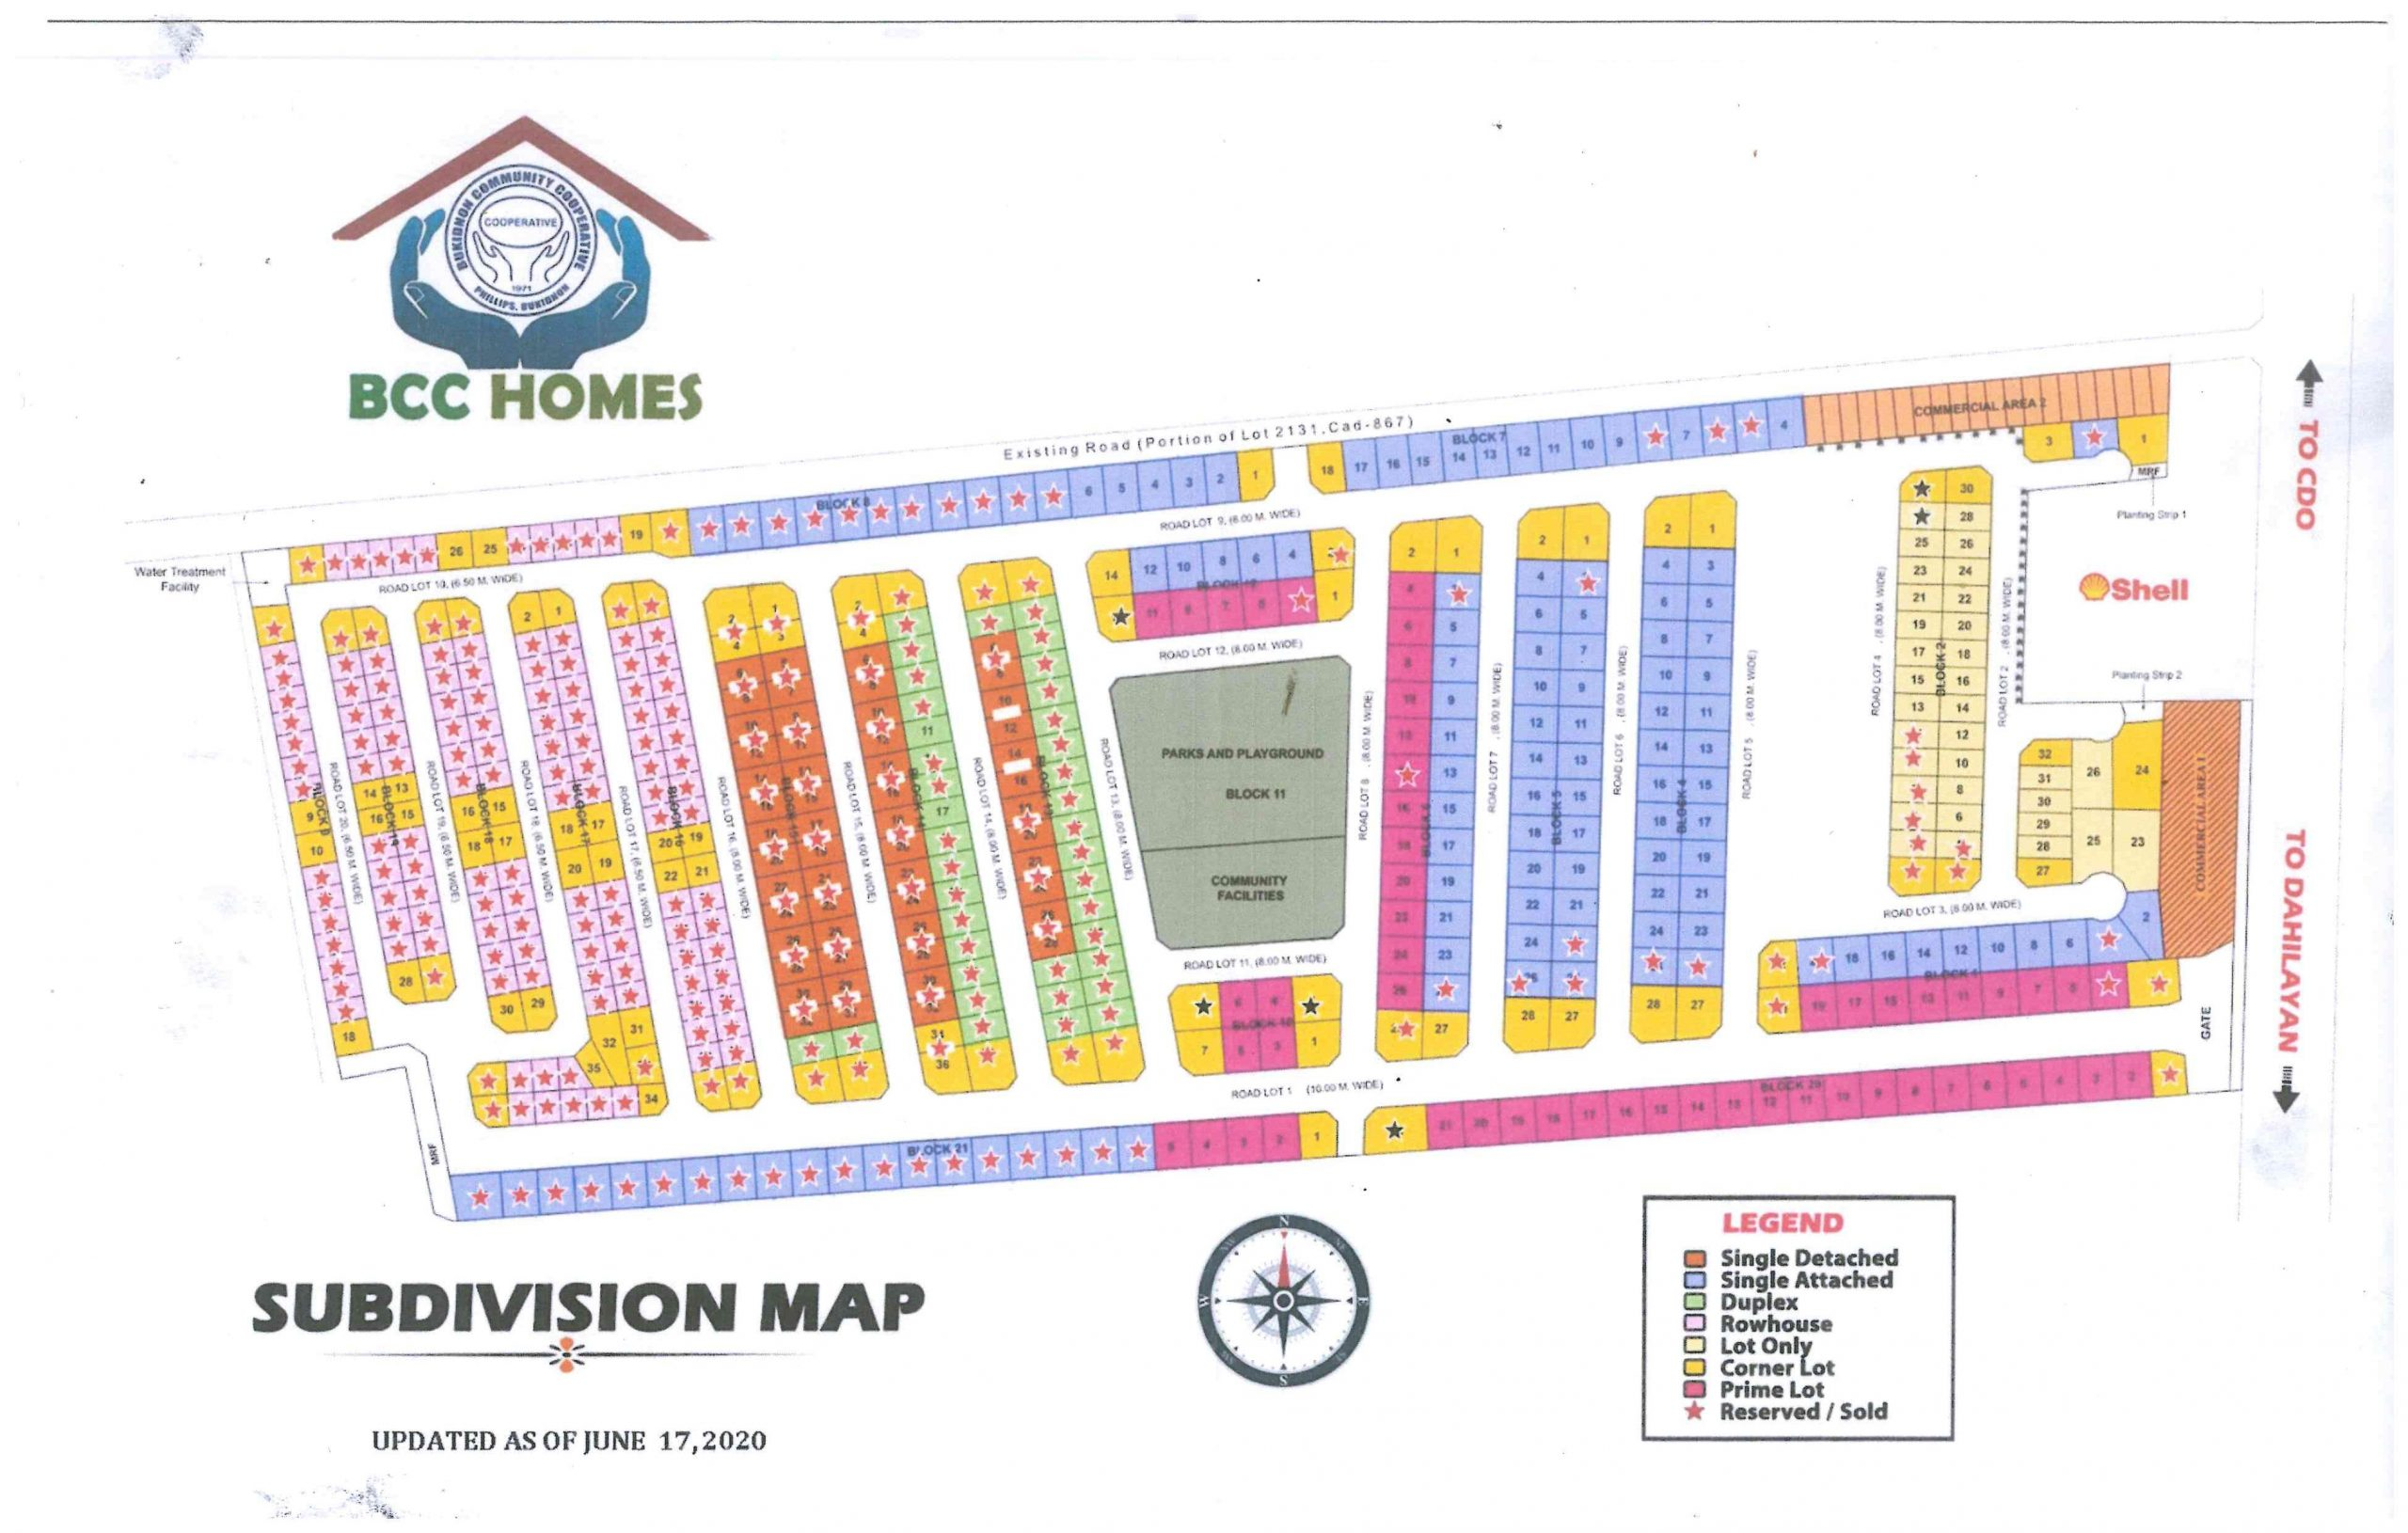 BCC Homes Subdivision Map